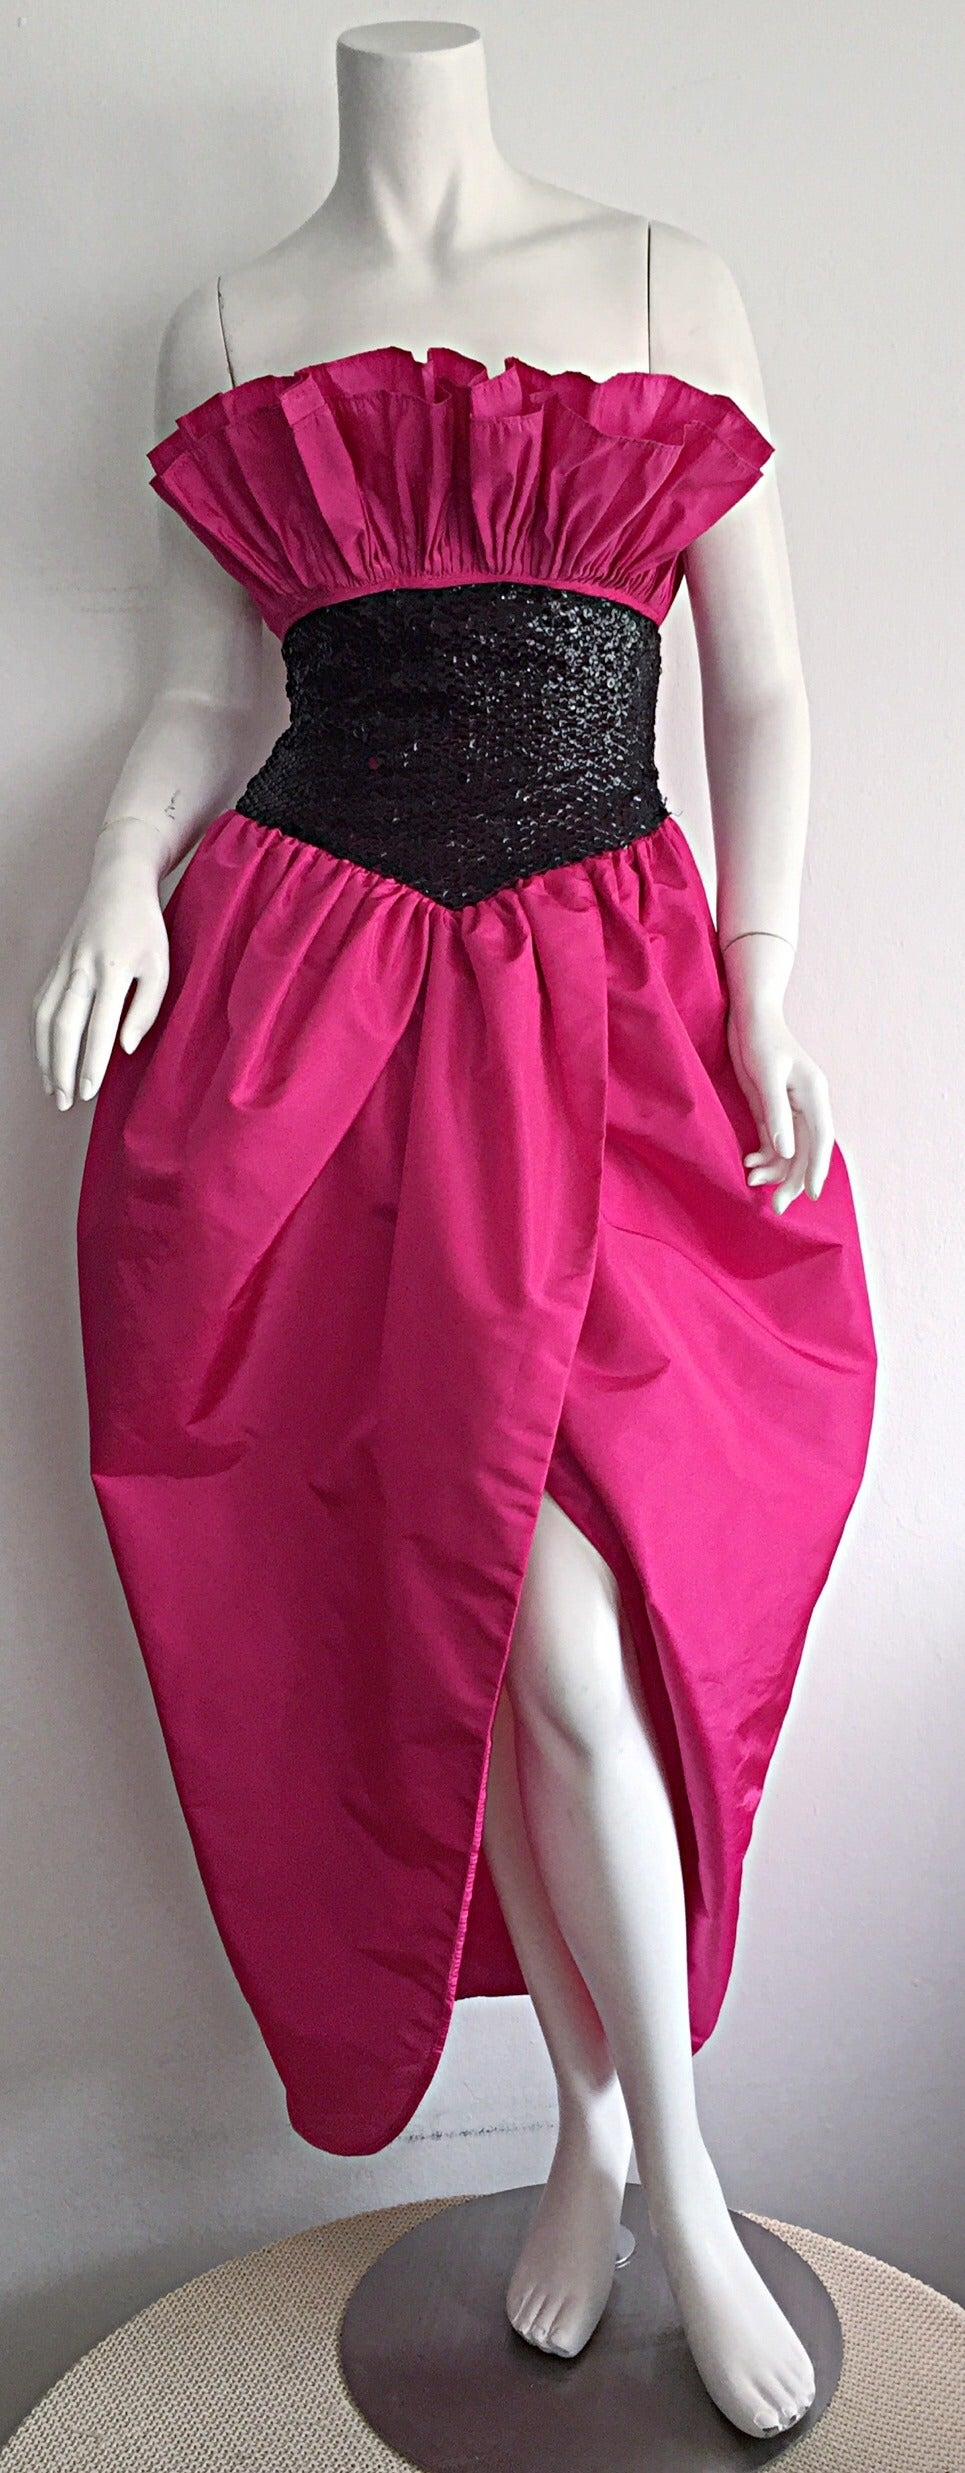 Incredible Vintage Victor Costa for Neiman Marcus Hot Pink Origami Tulip Dress 8